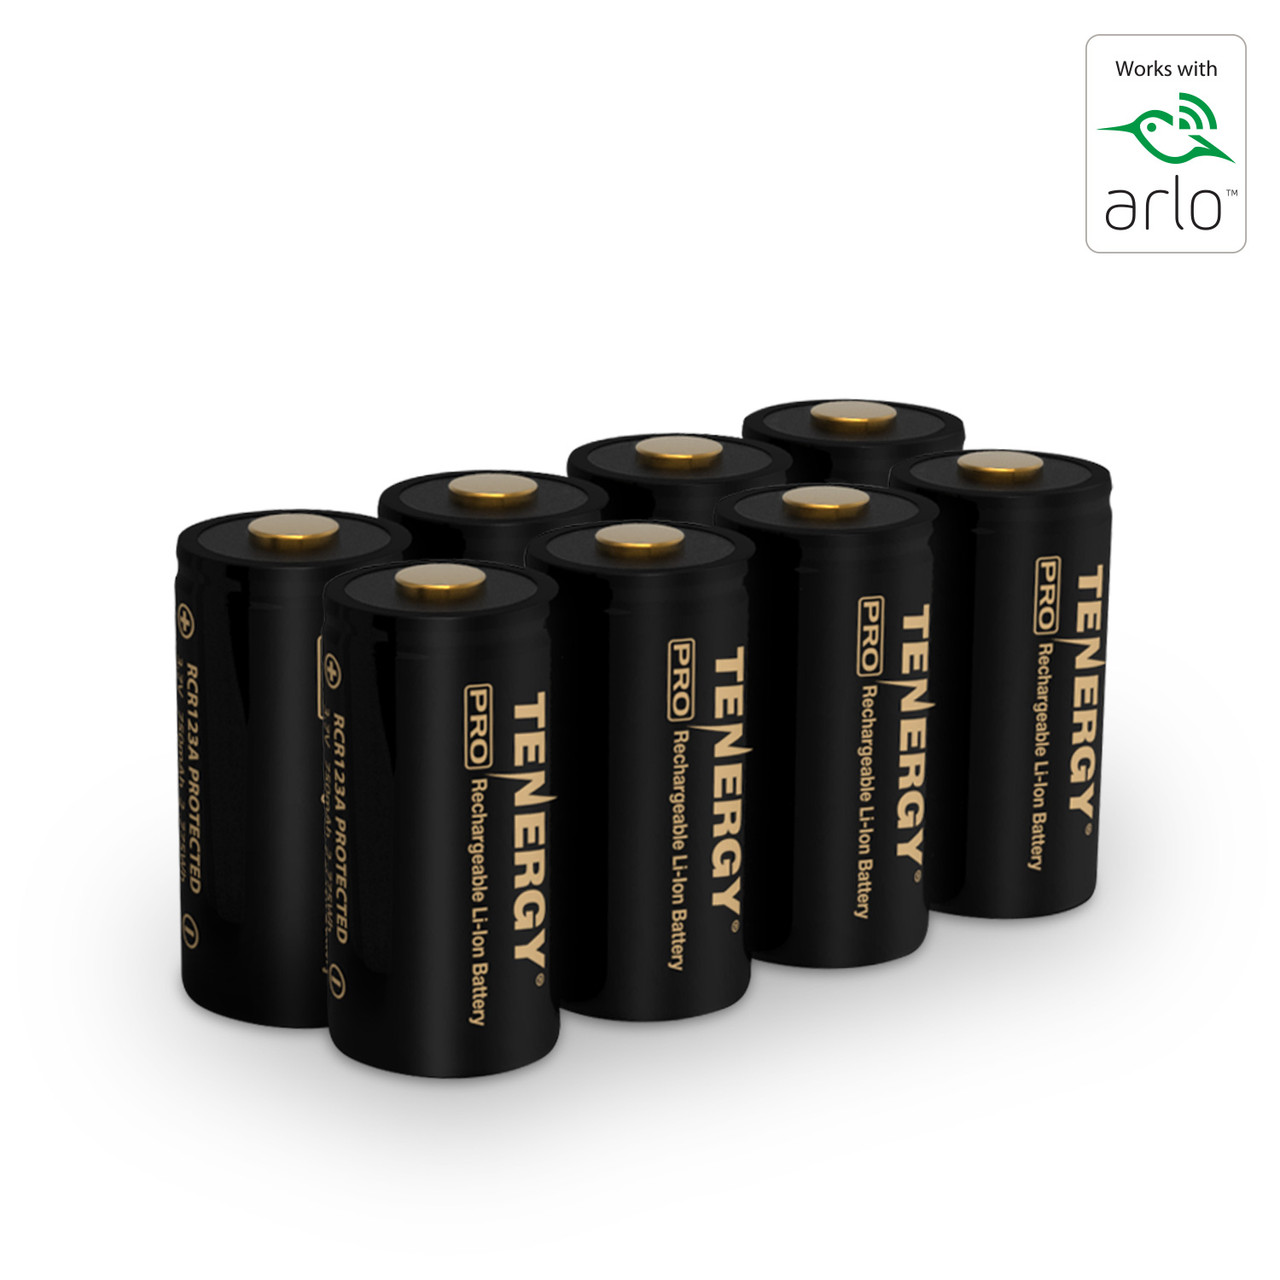 Premium High Capacity Rechargeable Batteries (8-Pack) Arlo Certified Li-ion 3.7V 750mAh